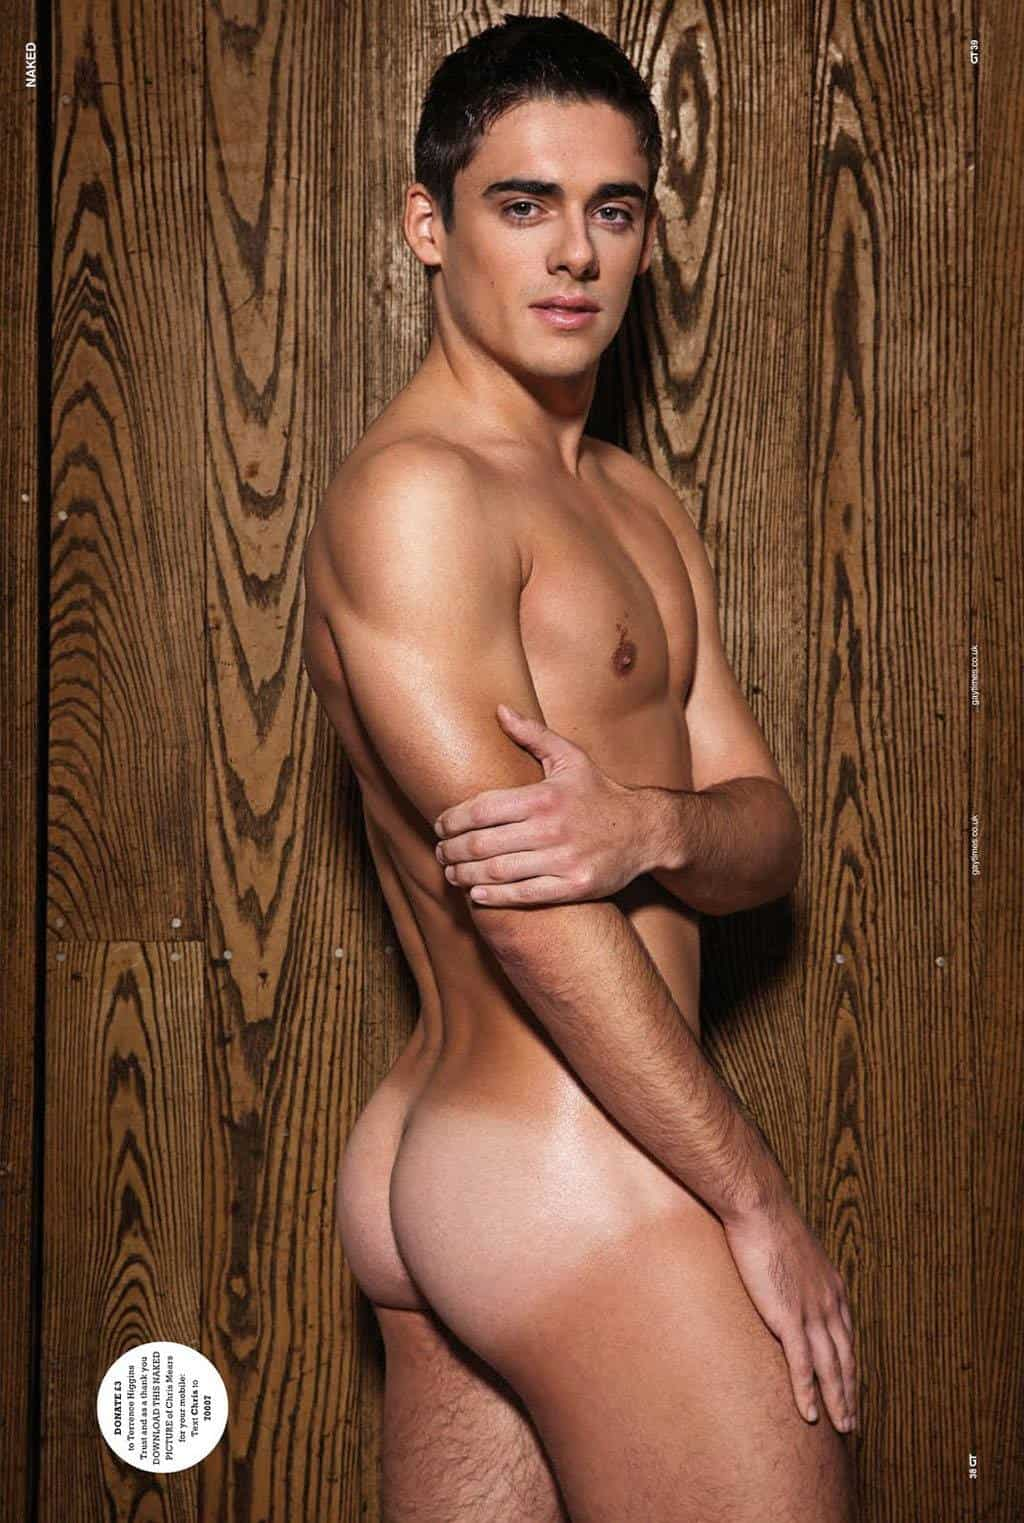 More Chris Mears Naked In Gay Times 2013 Naked Edition